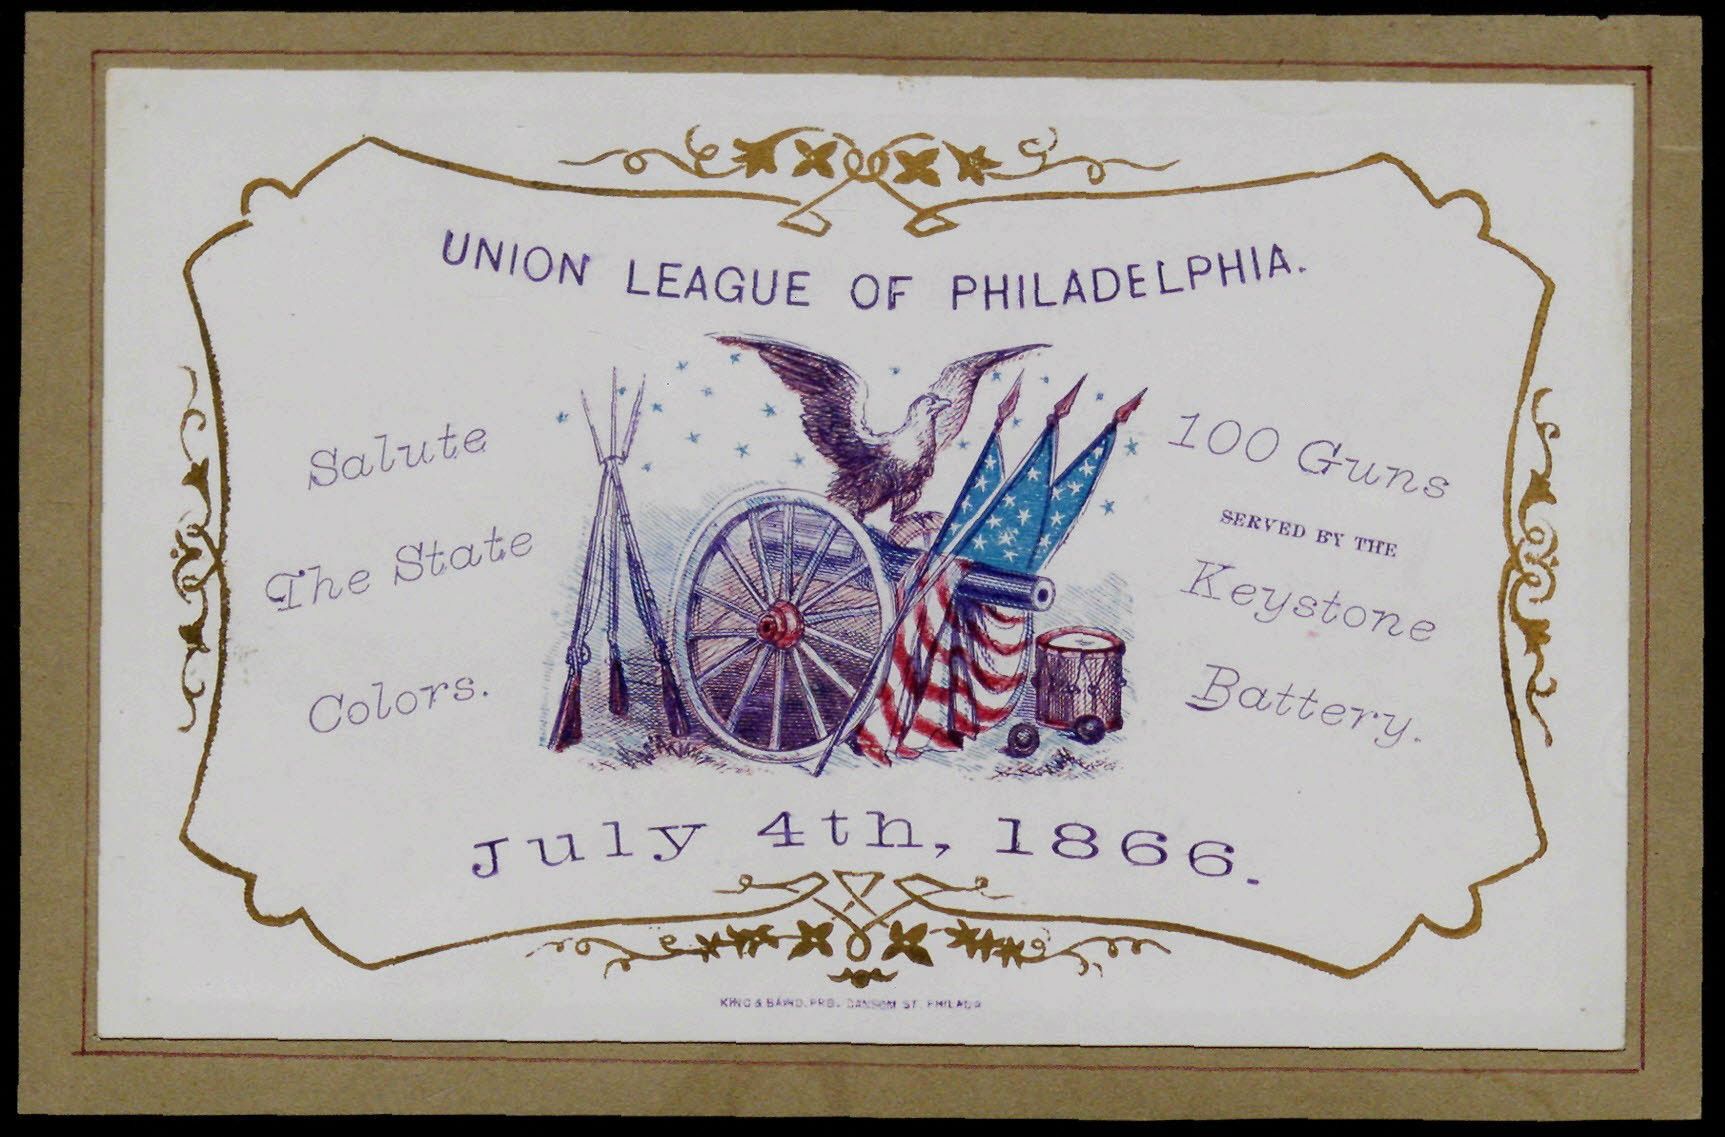 Commemoration card of the Union League of Philadelphia, including information regarding a 4 July celebration